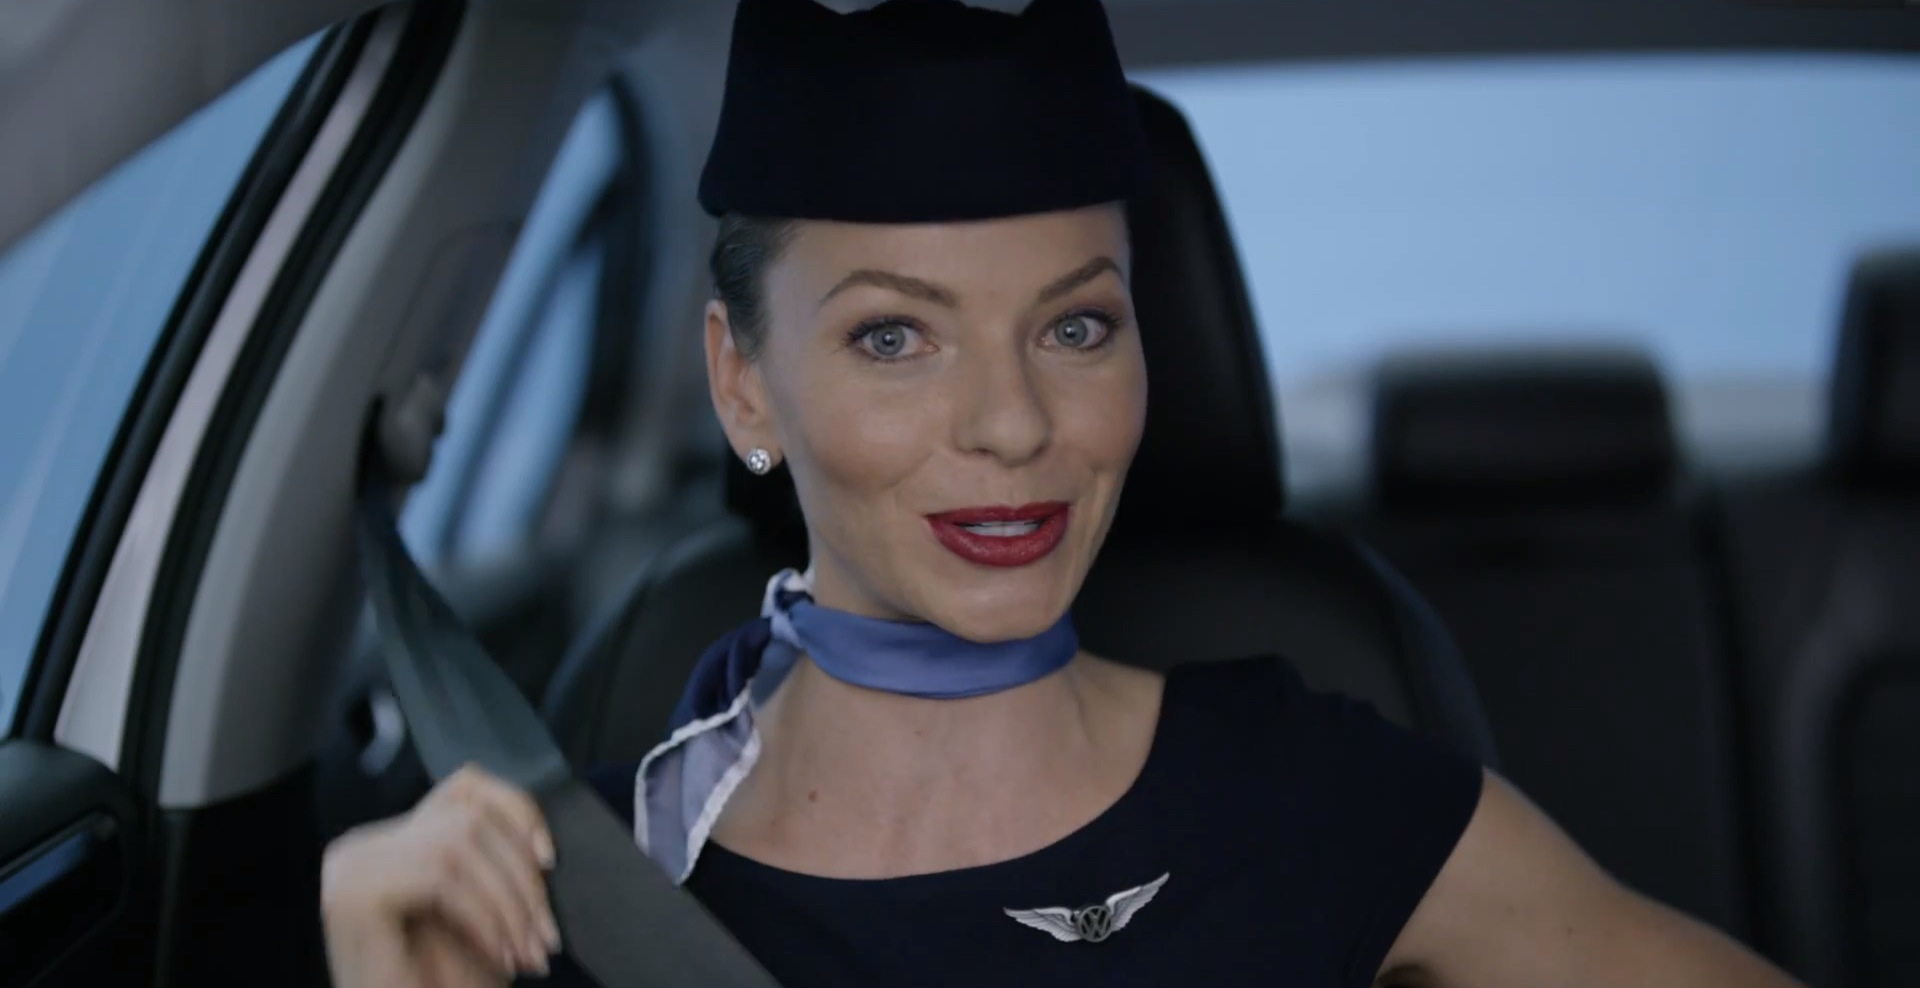 2015 Volkswagen Jetta Commercial Has a Stewardess and It's Sexy - autoevolution